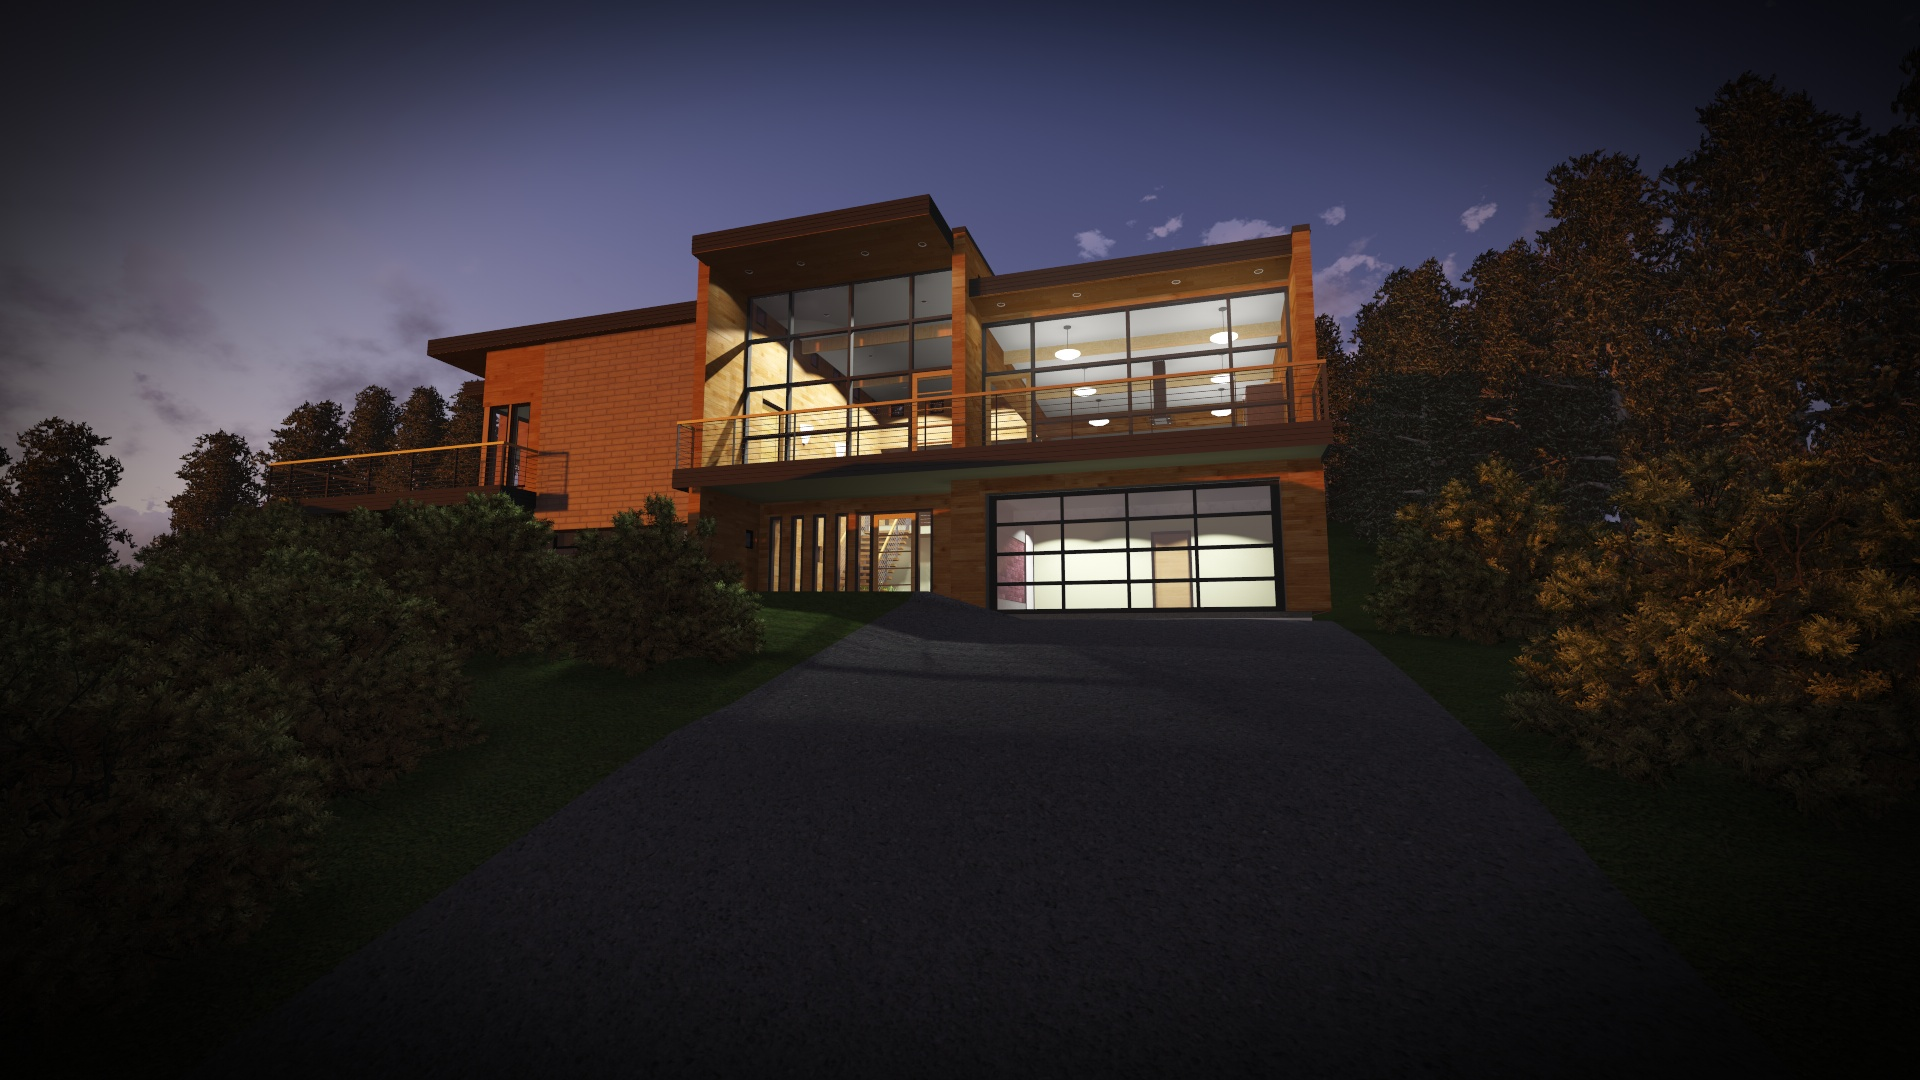 A modern remodel of an existing house (conceptual only).